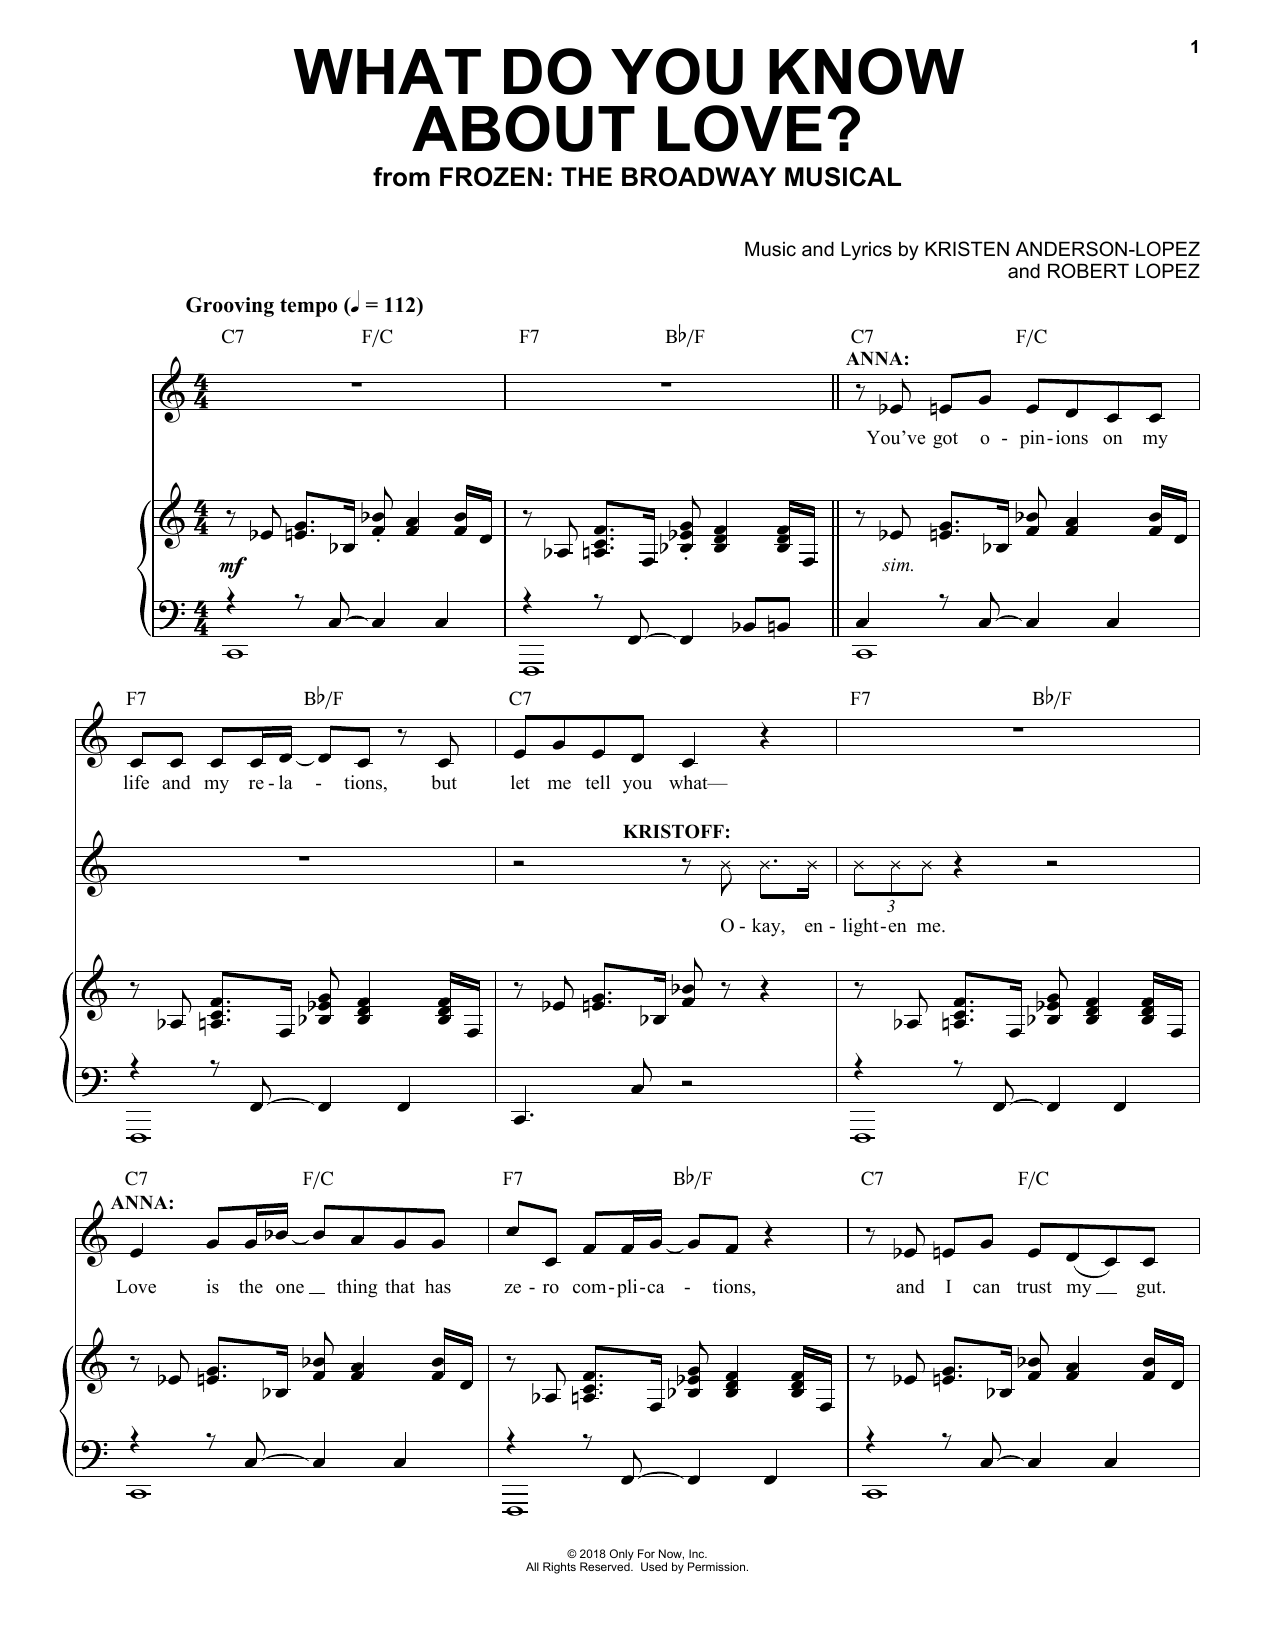 Kristen Anderson-Lopez & Robert Lopez What Do You Know About Love? (from Frozen: the Broadway Musical) sheet music preview music notes and score for Piano, Vocal & Guitar (Right-Hand Melody) including 11 page(s)